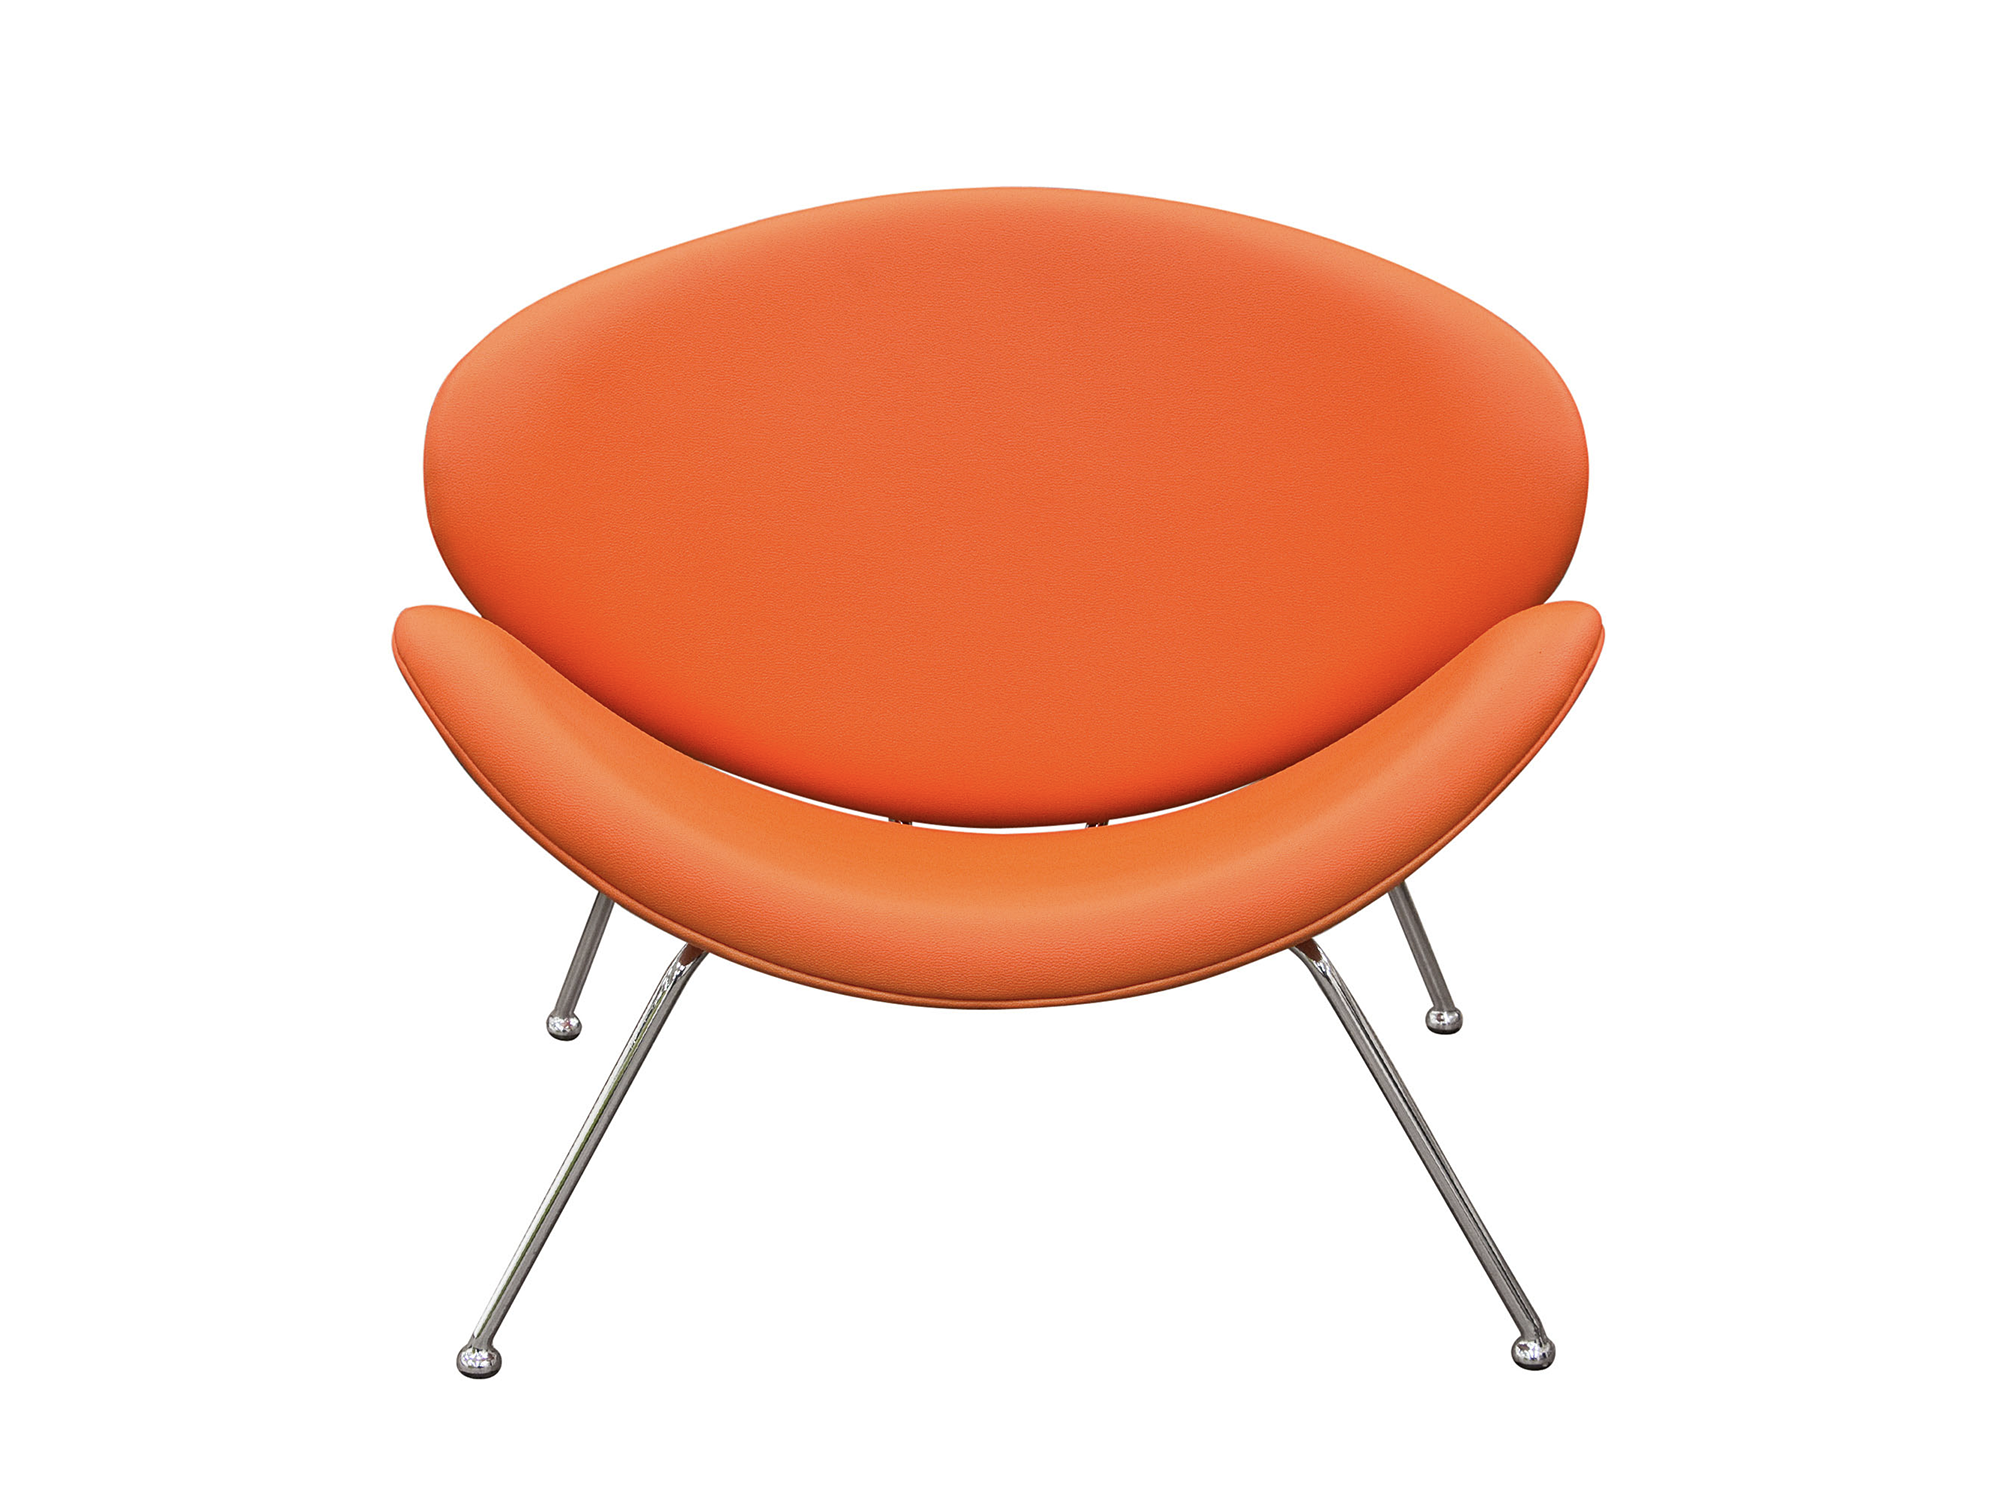 AUSTIN CHAIR - ORANGE